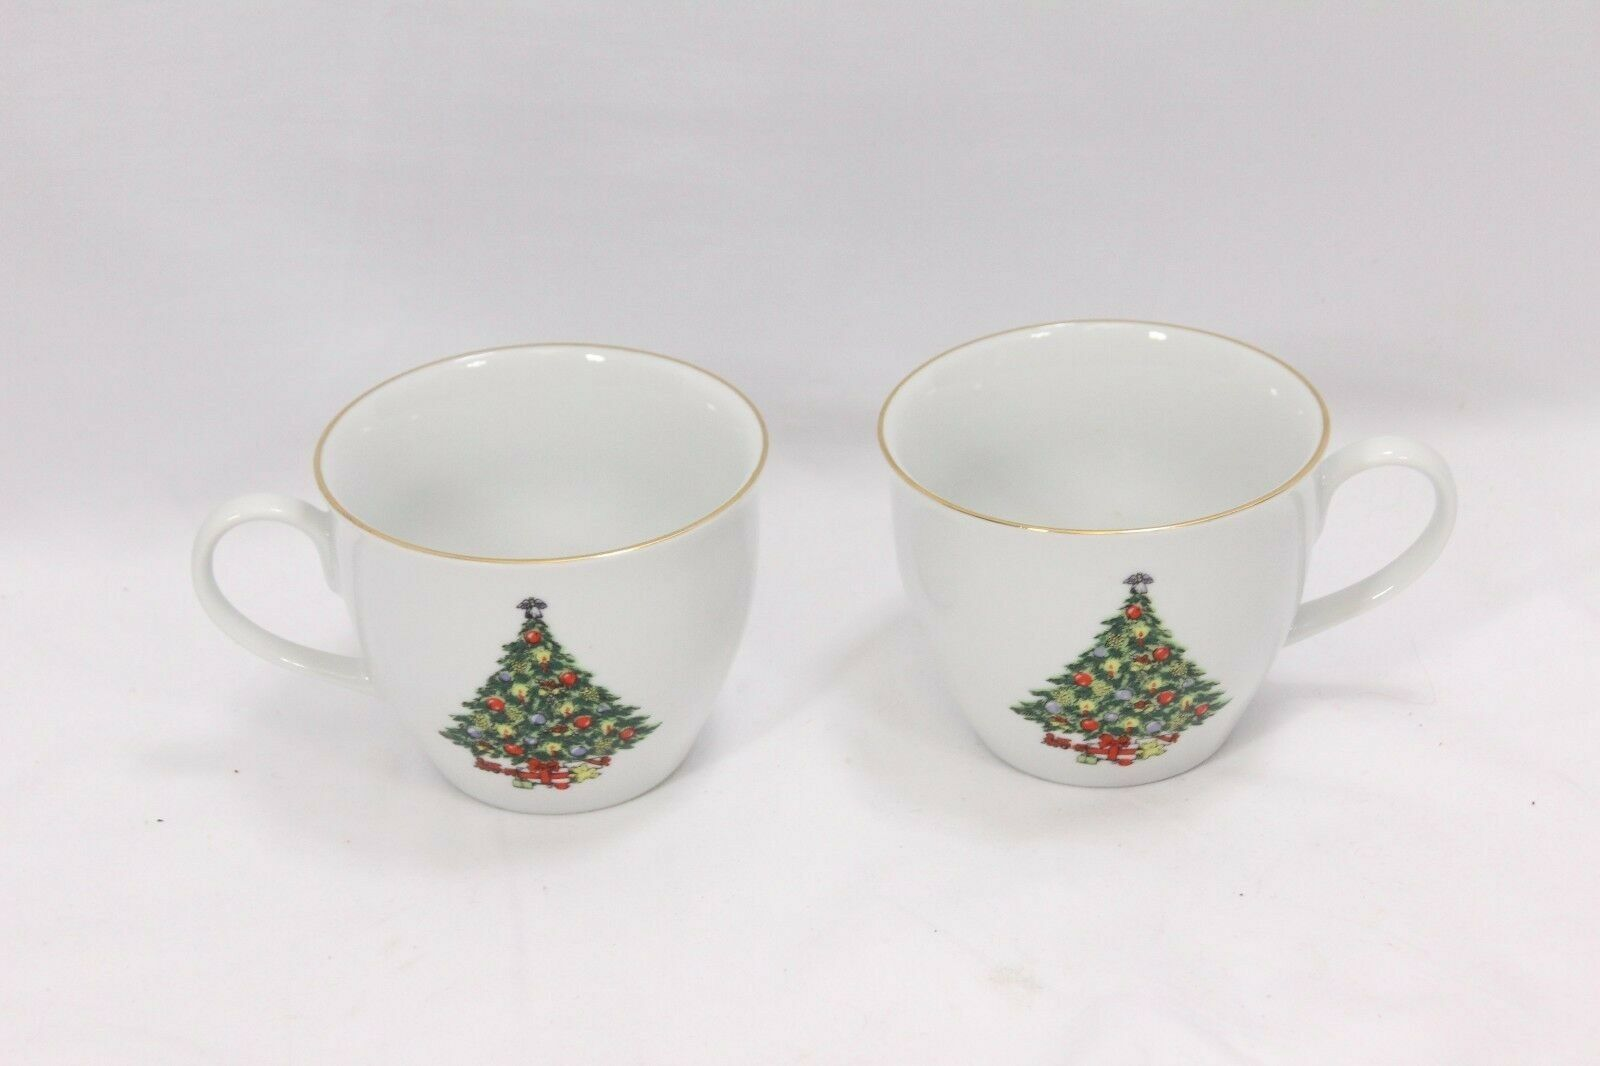 Jamestown Xmas Treasure Bowls Cups Saucers Lot of 12 image 7